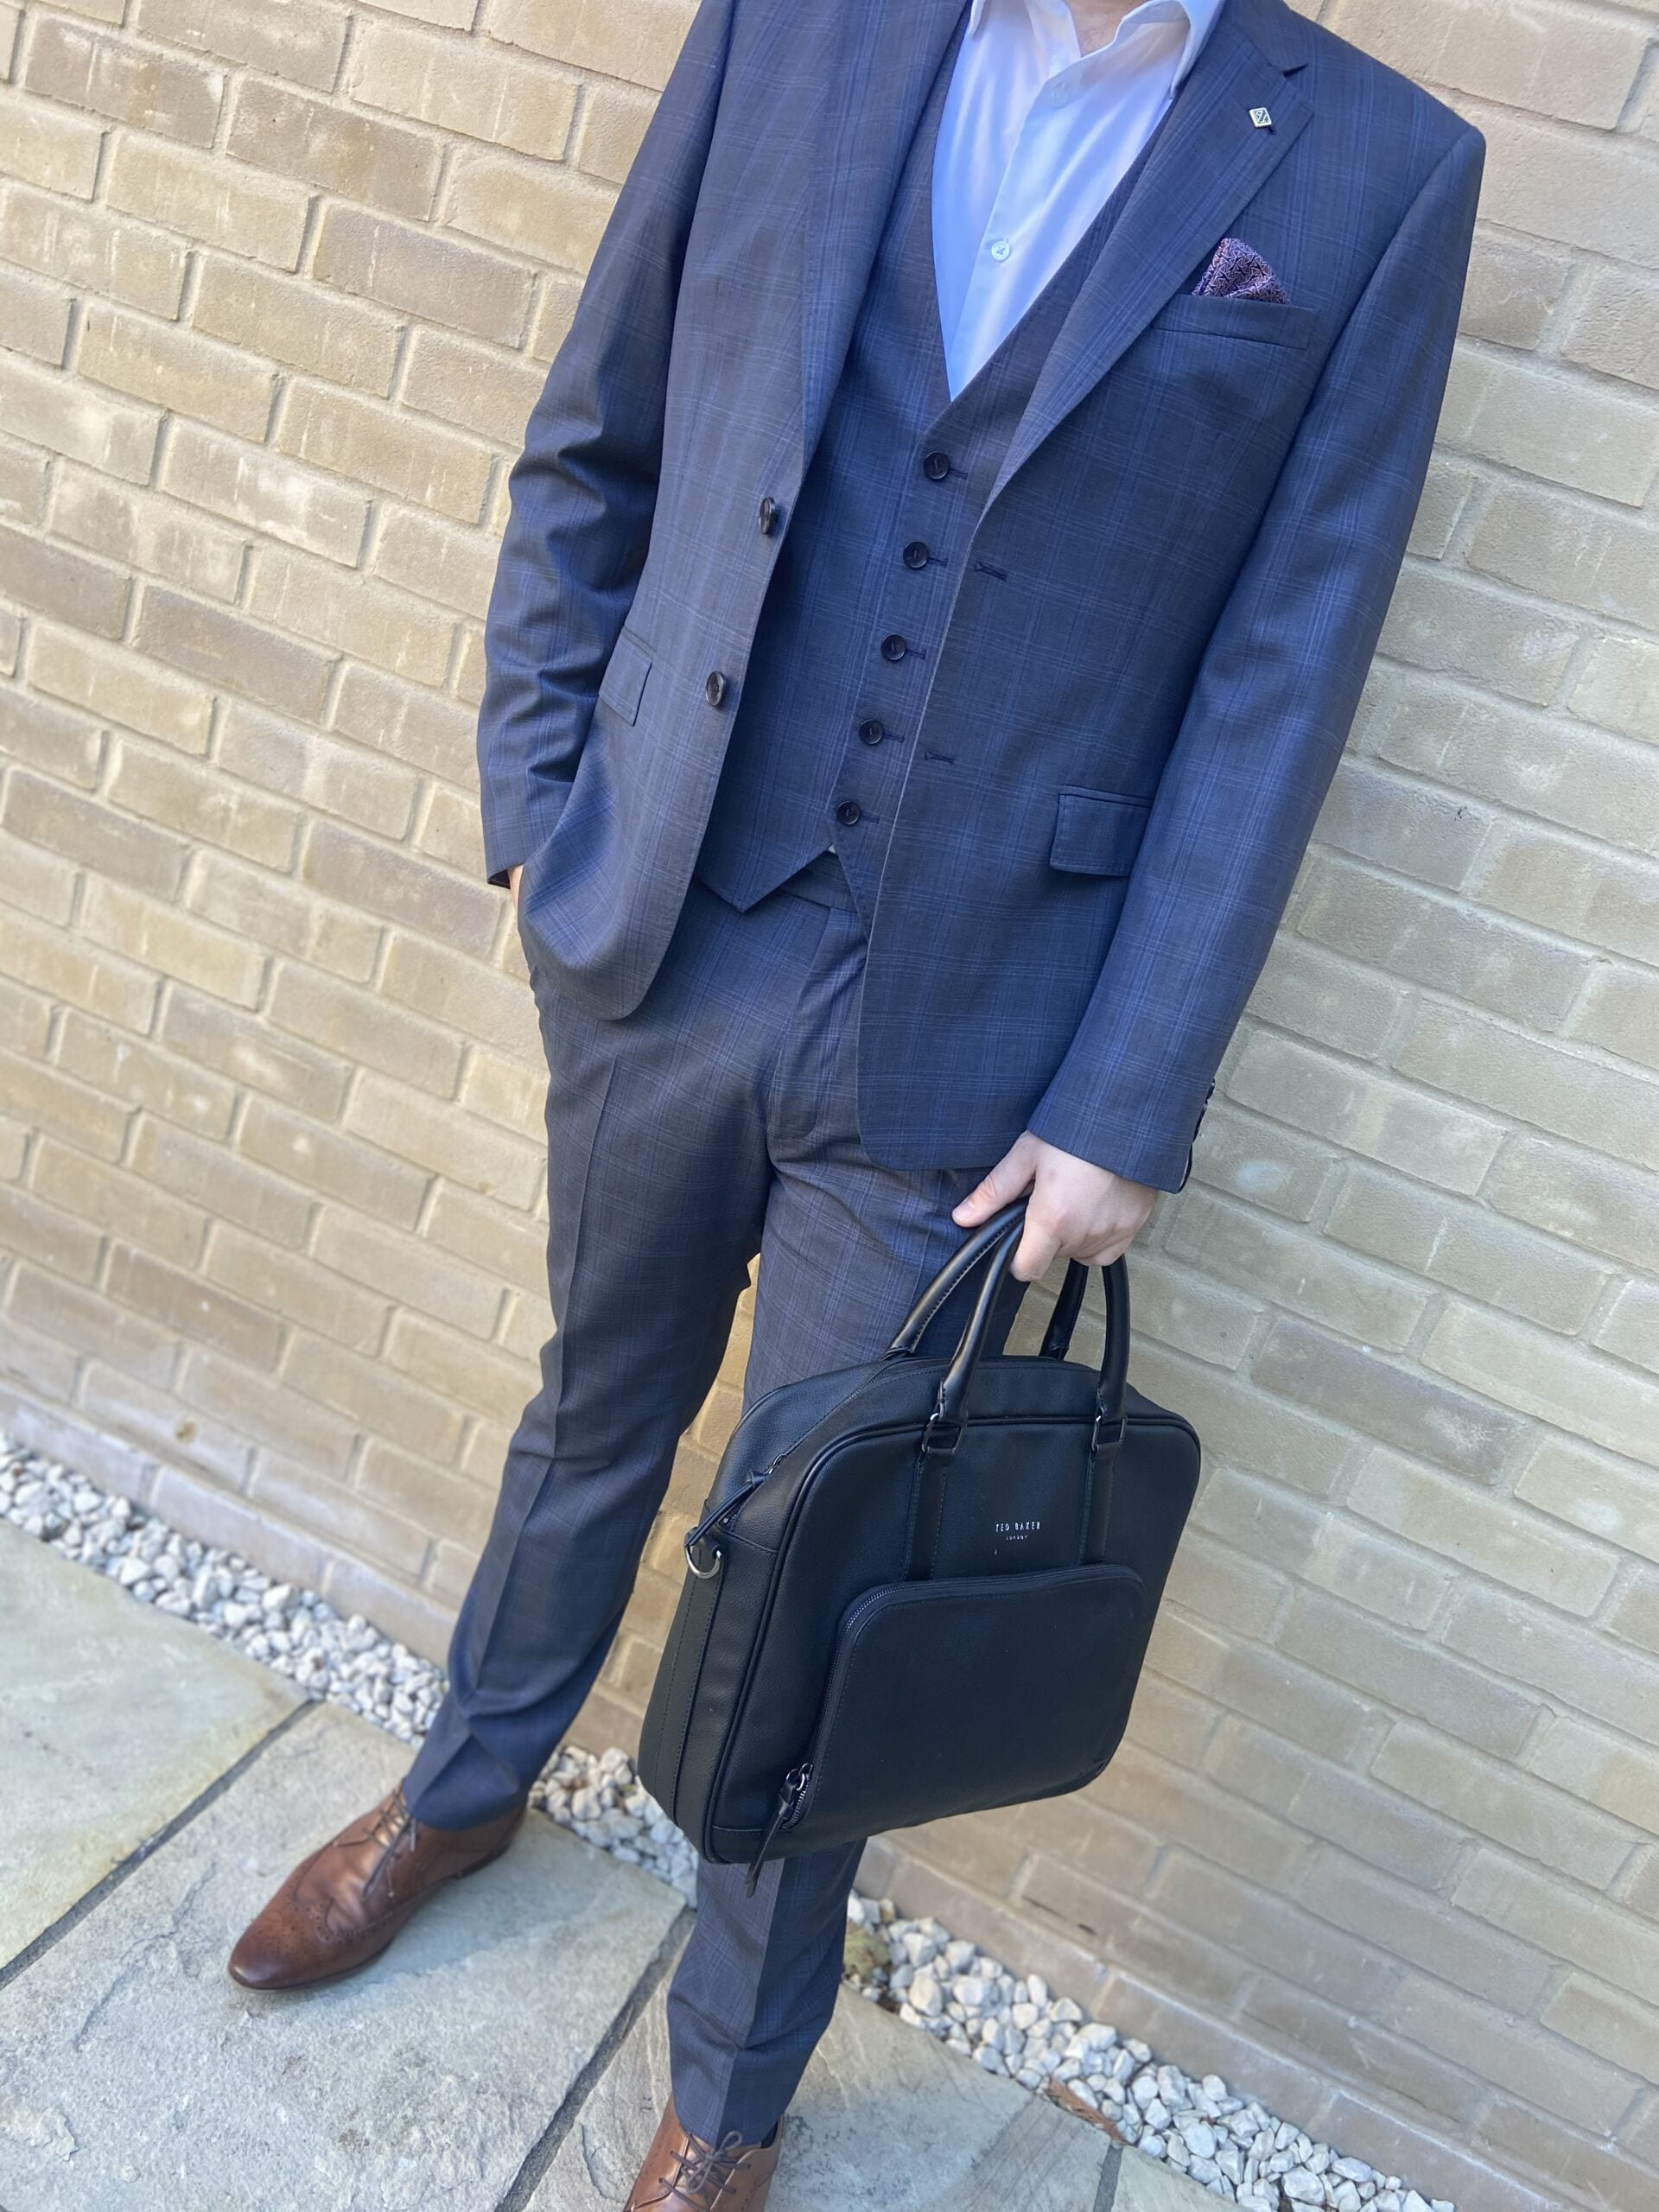 Ted Baker Blue Suit